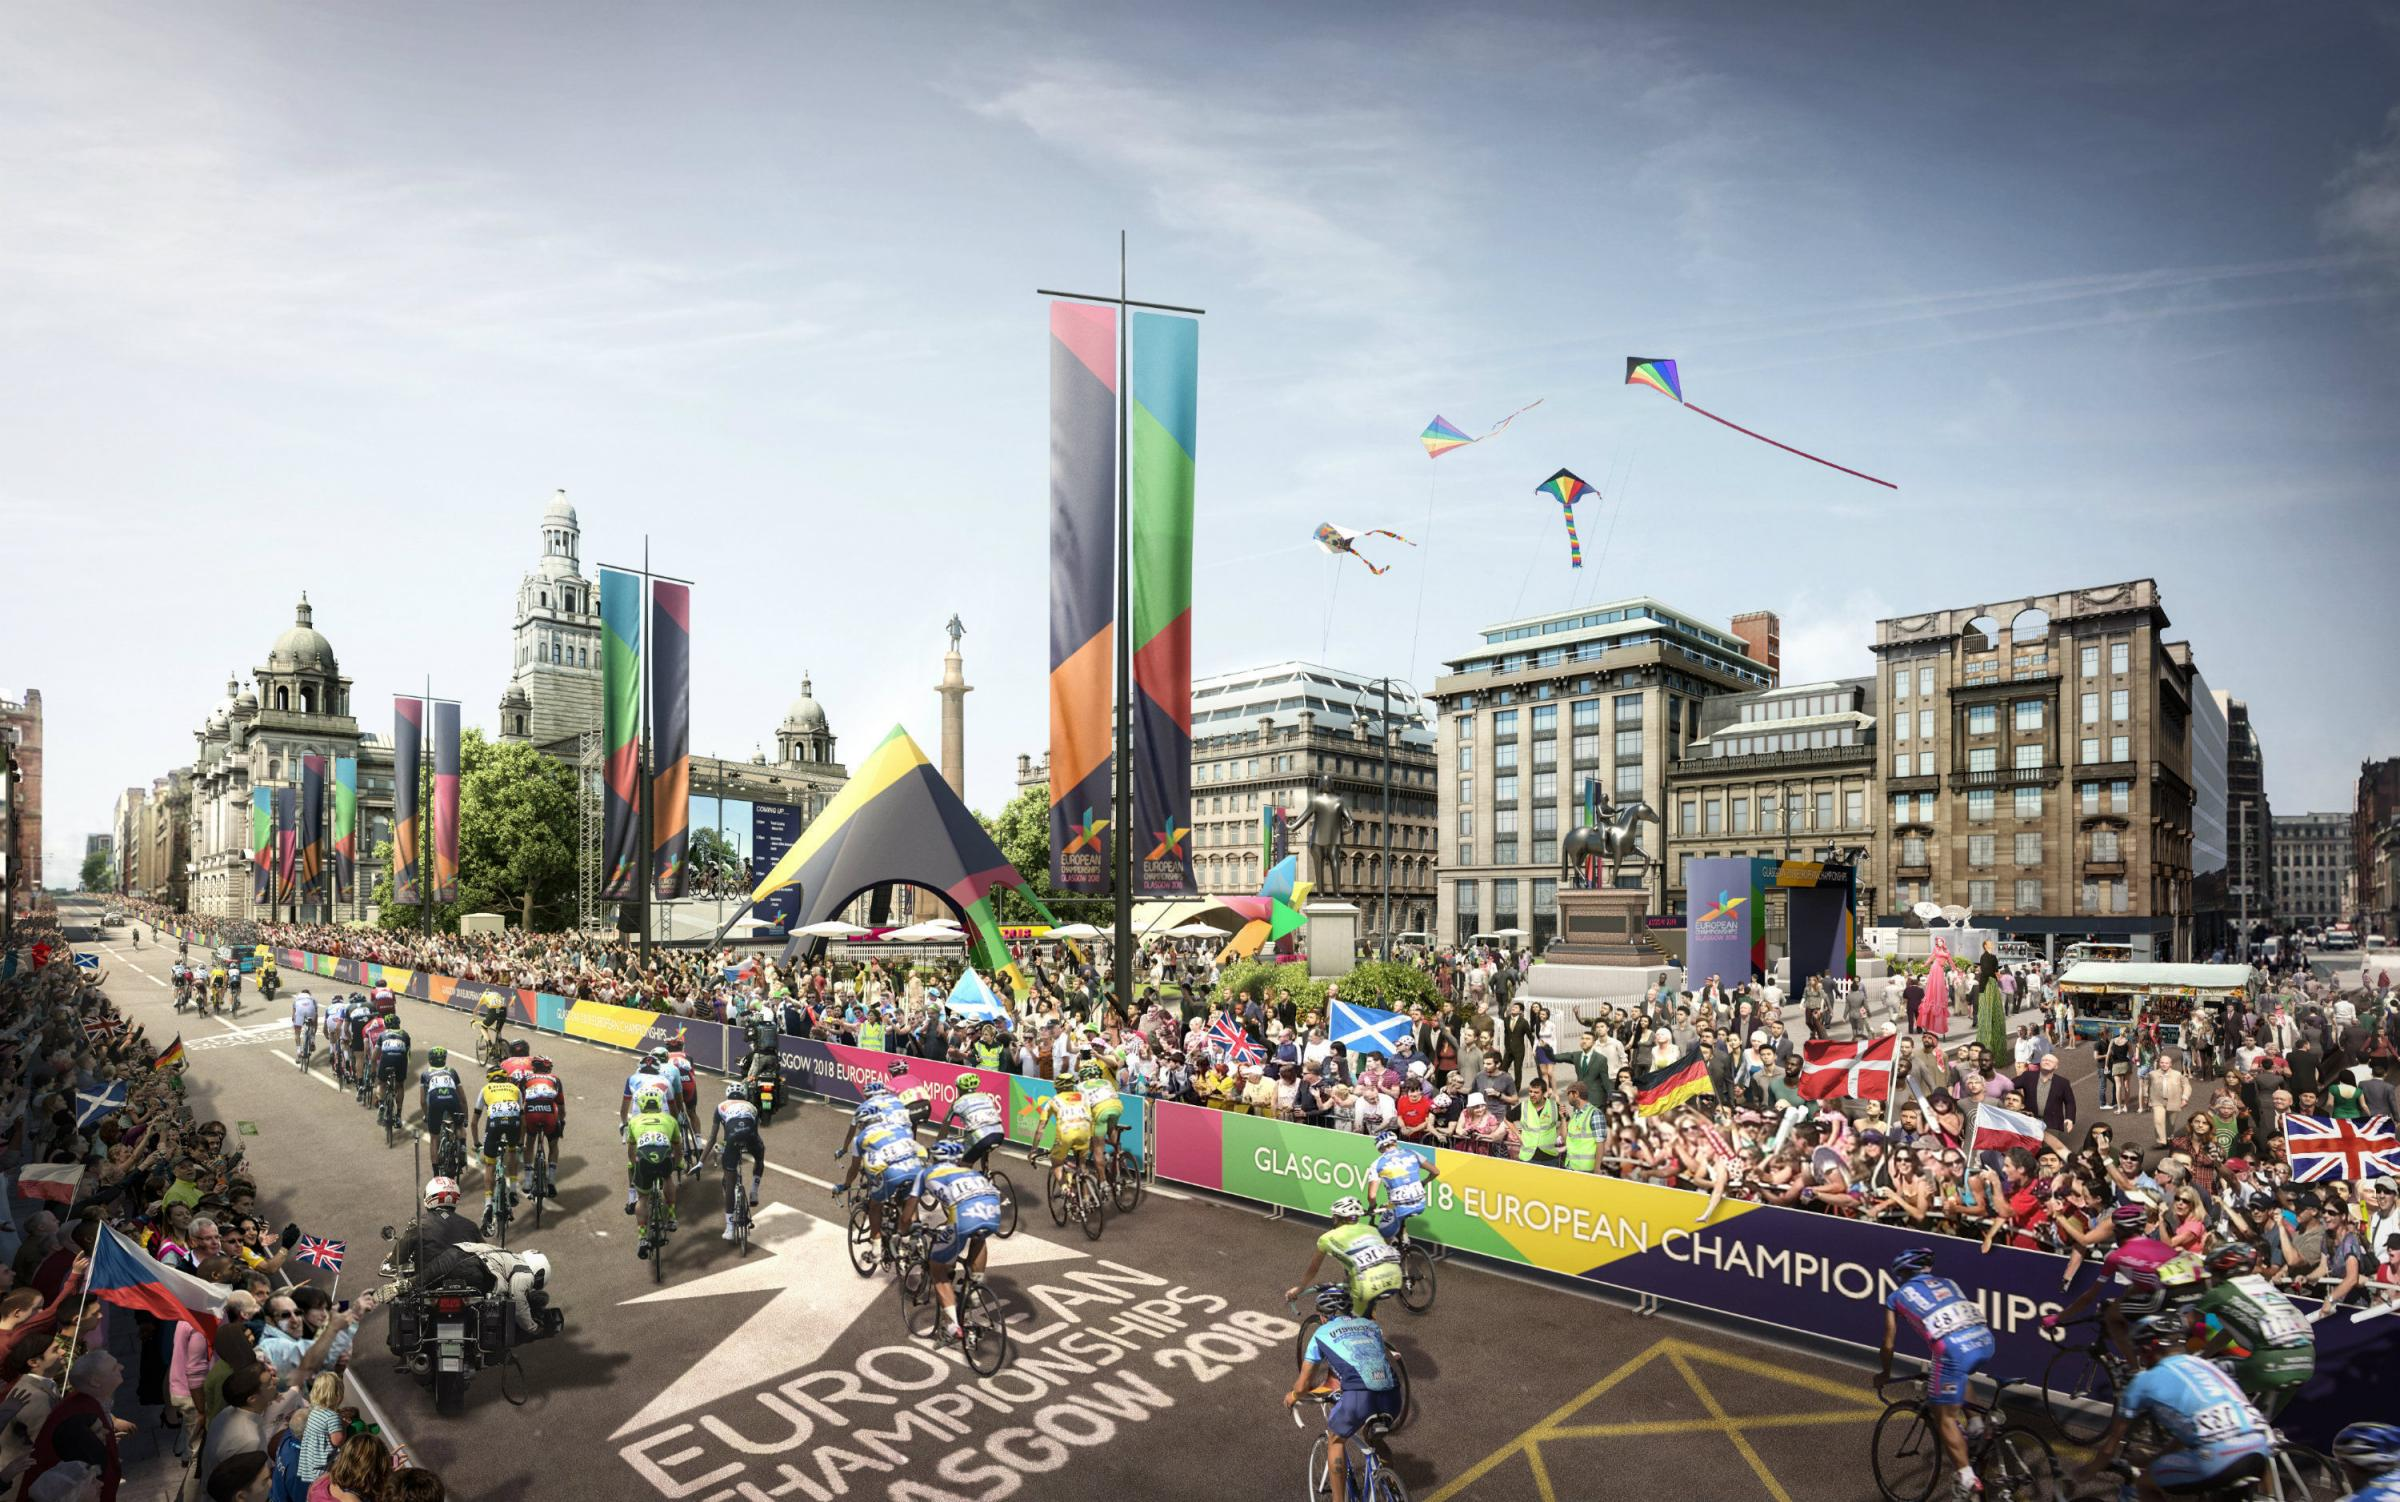 Glasgow 2018 European Championships will run from August 2 to 12